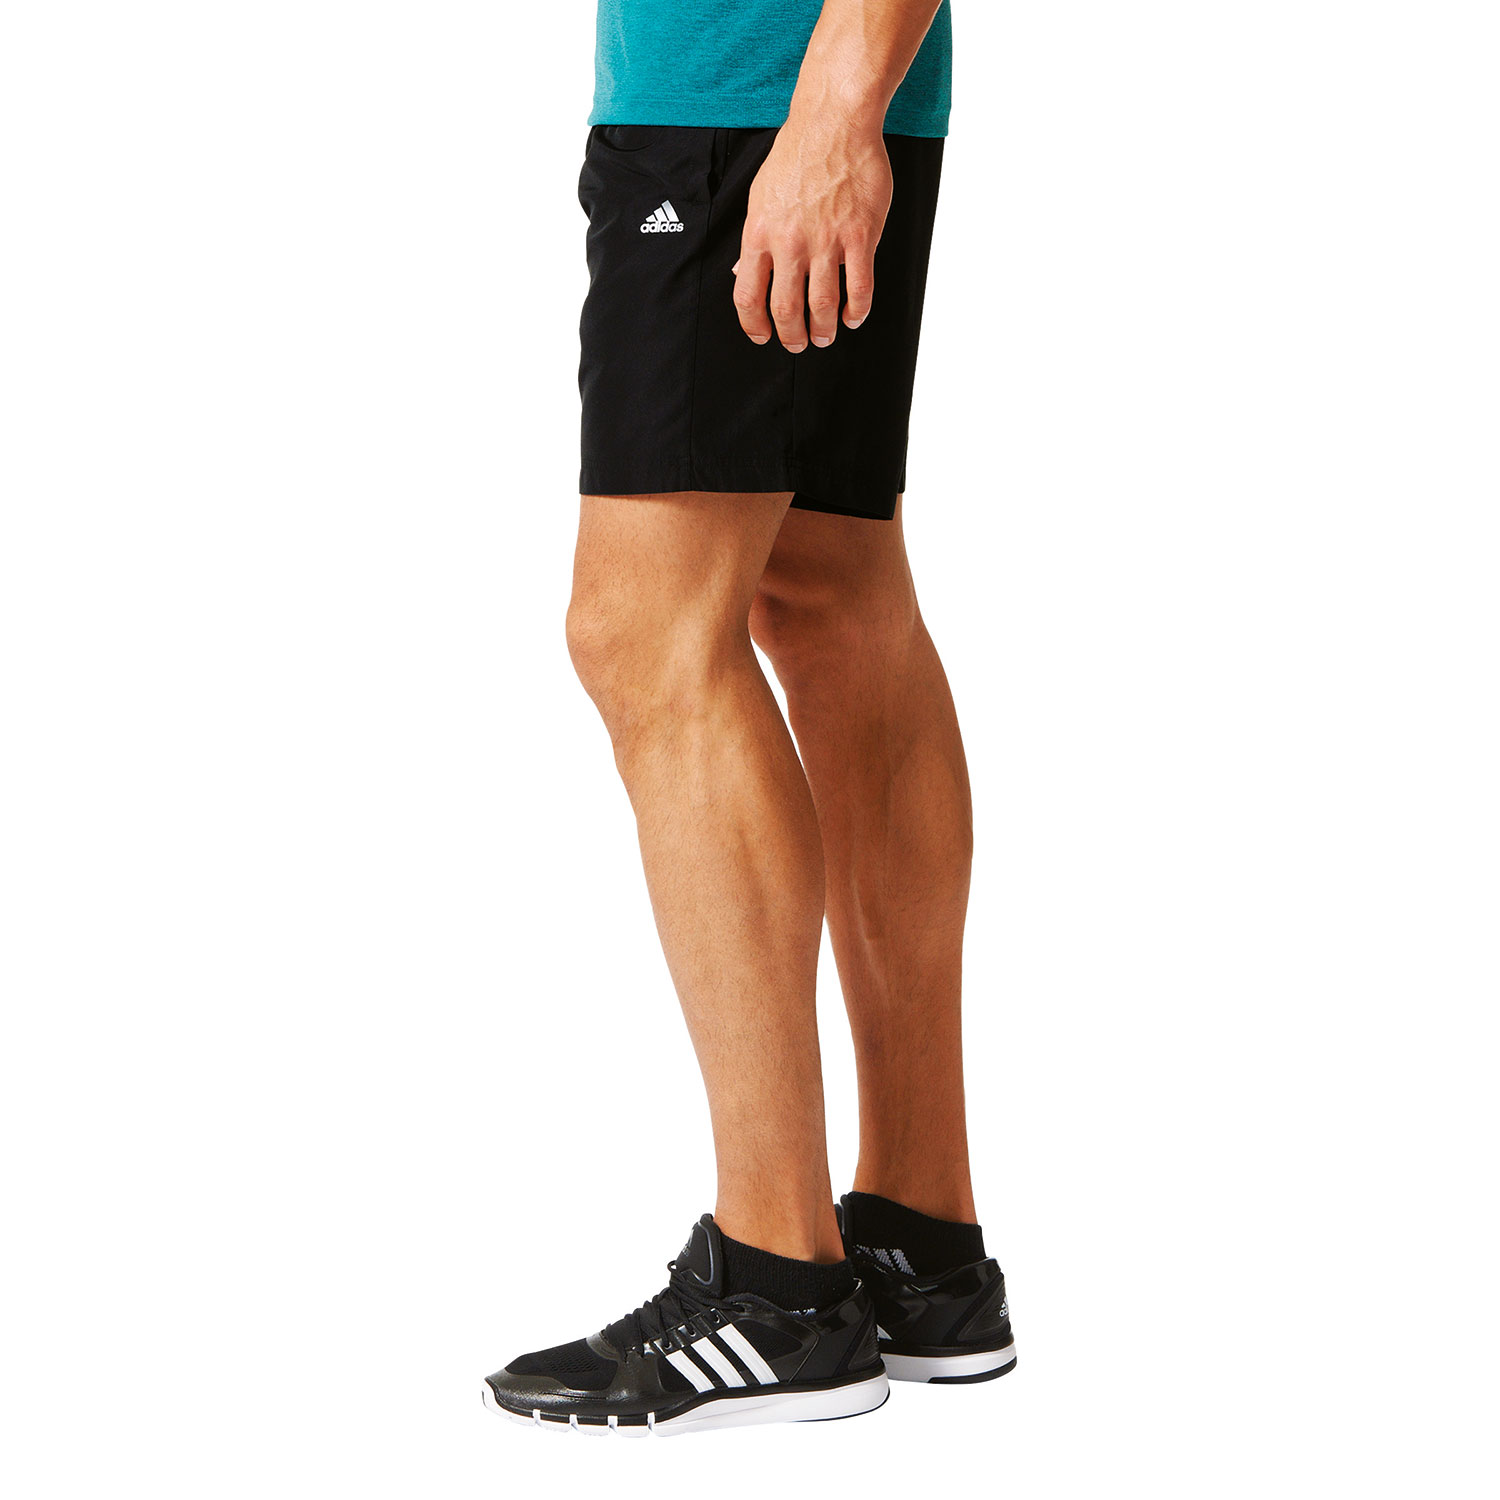 adidas Base Plain Short Woven Herren Trainingsshort – Bild 3